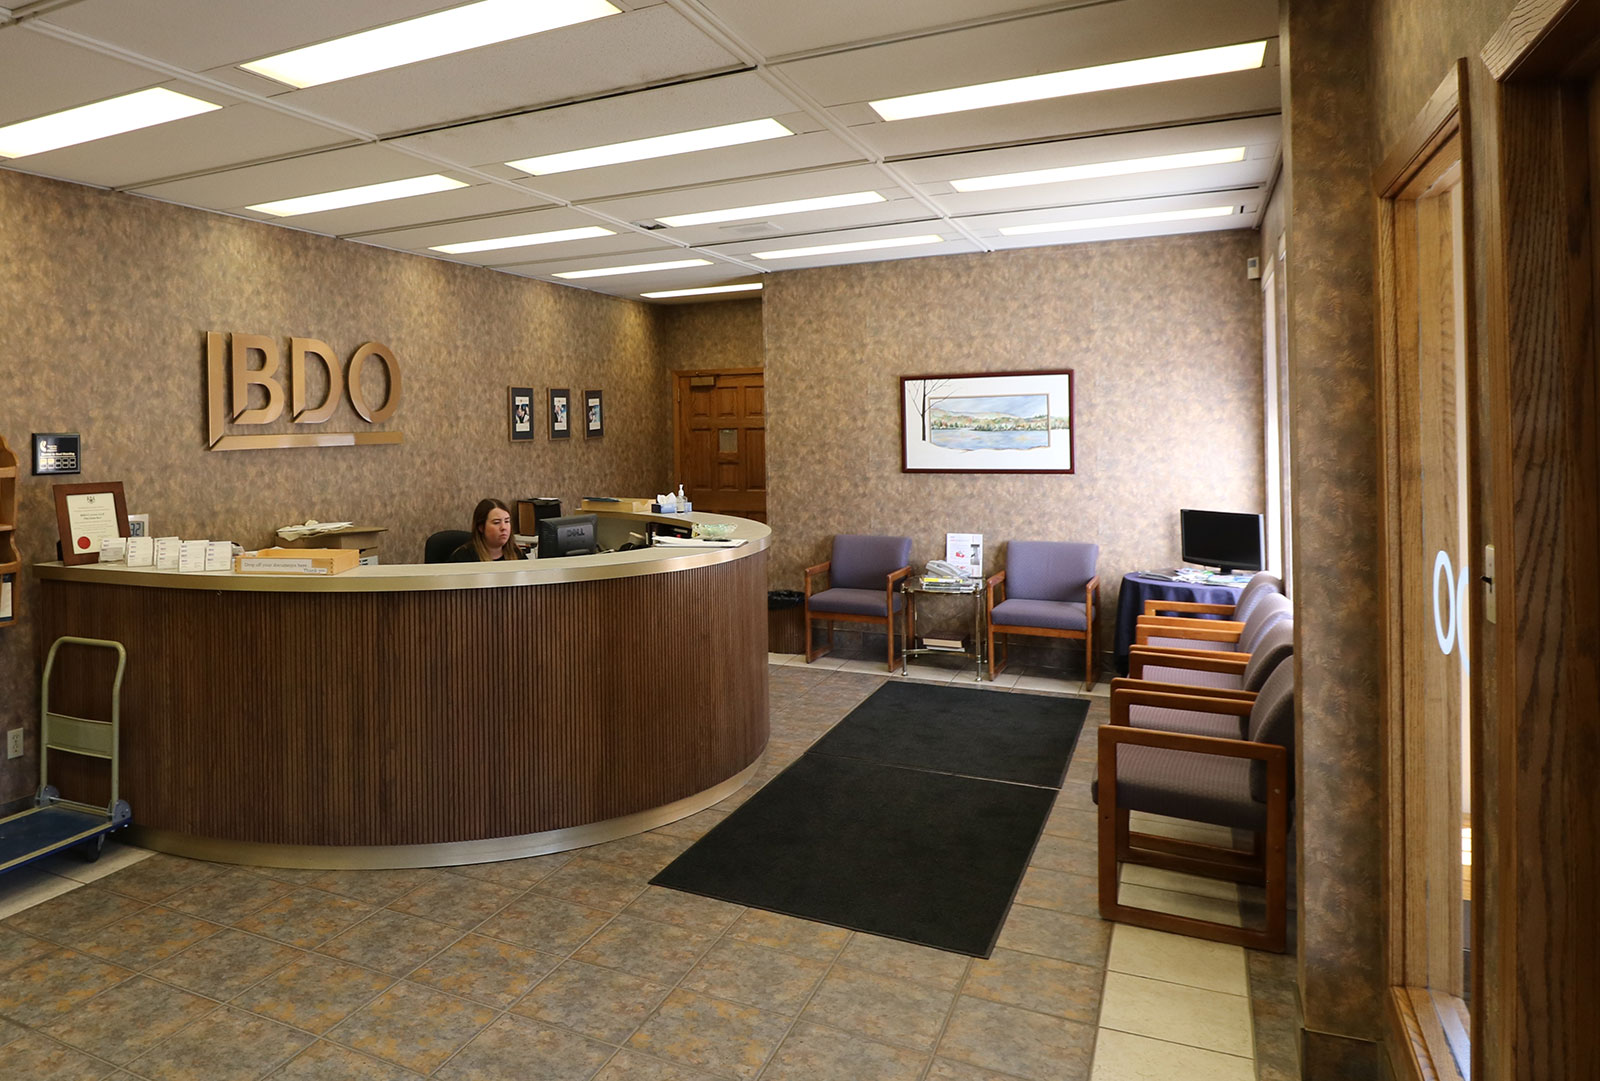 bdo-lobby-before